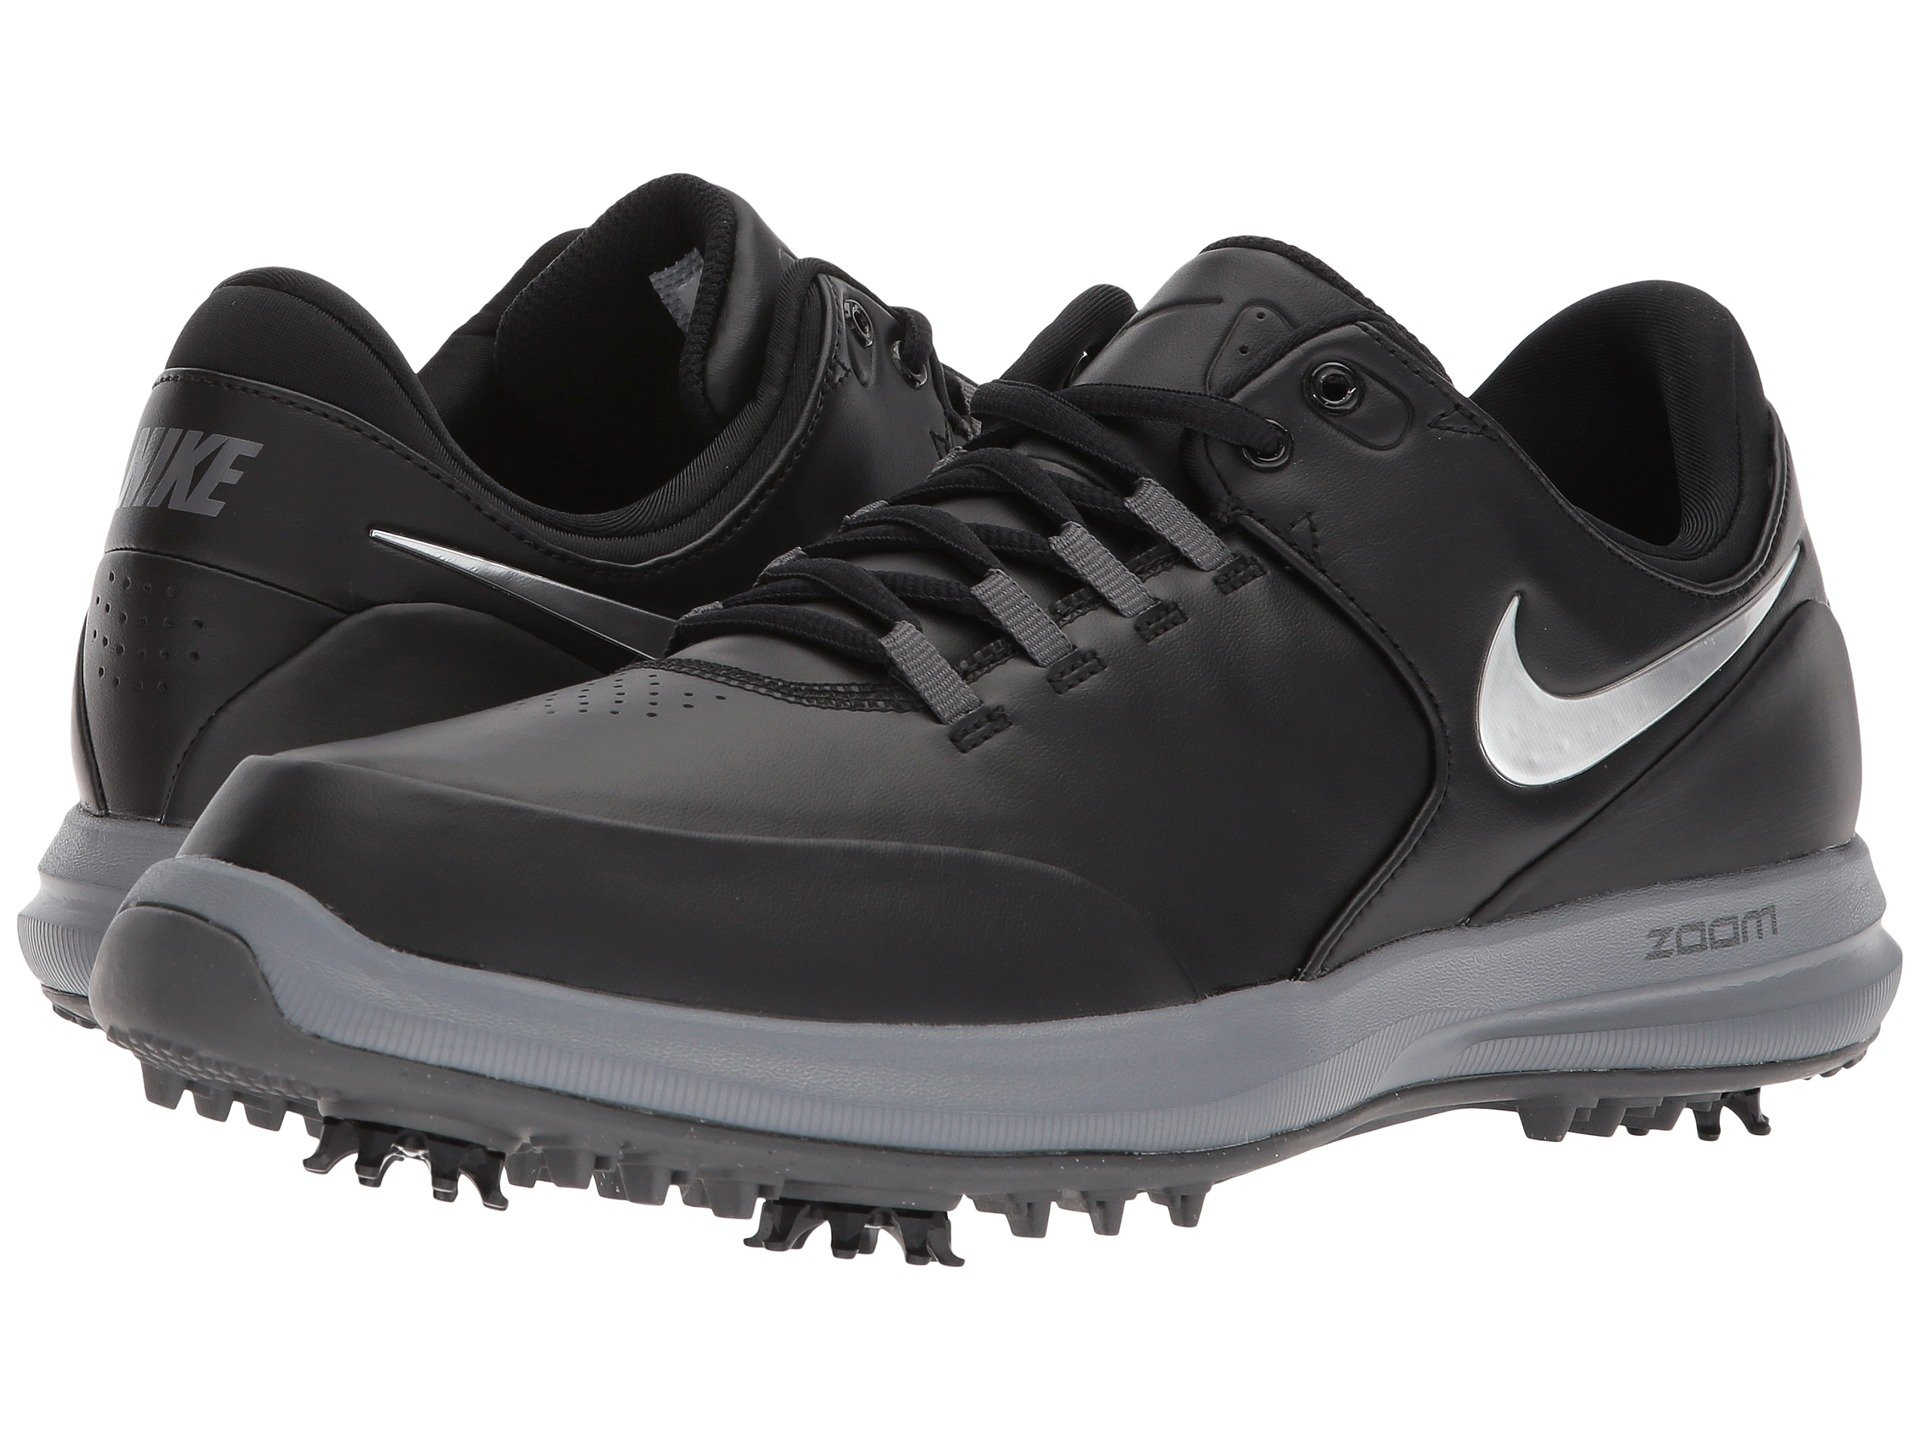 920cbaf0c0836 Men s Nike Golf Sneakers   Athletic Shoes + FREE SHIPPING